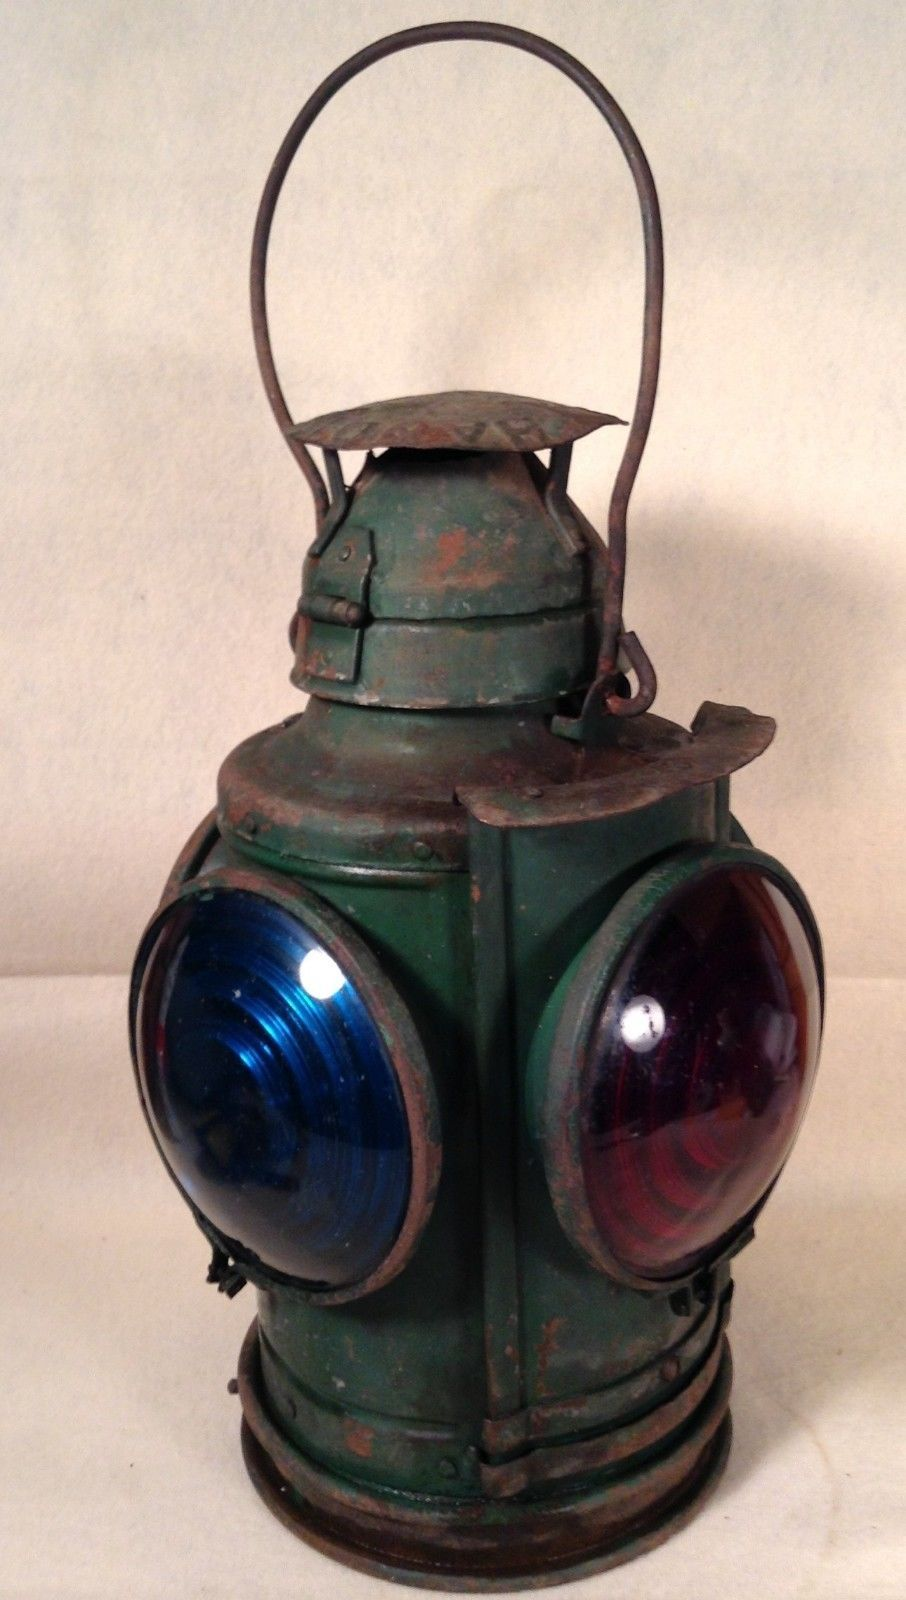 Antique Vintage Handland Railroad Lantern St Louis 4 Lens 1 Red 3 Blue Railroad Lanterns Antique Lanterns Lantern Light Fixture